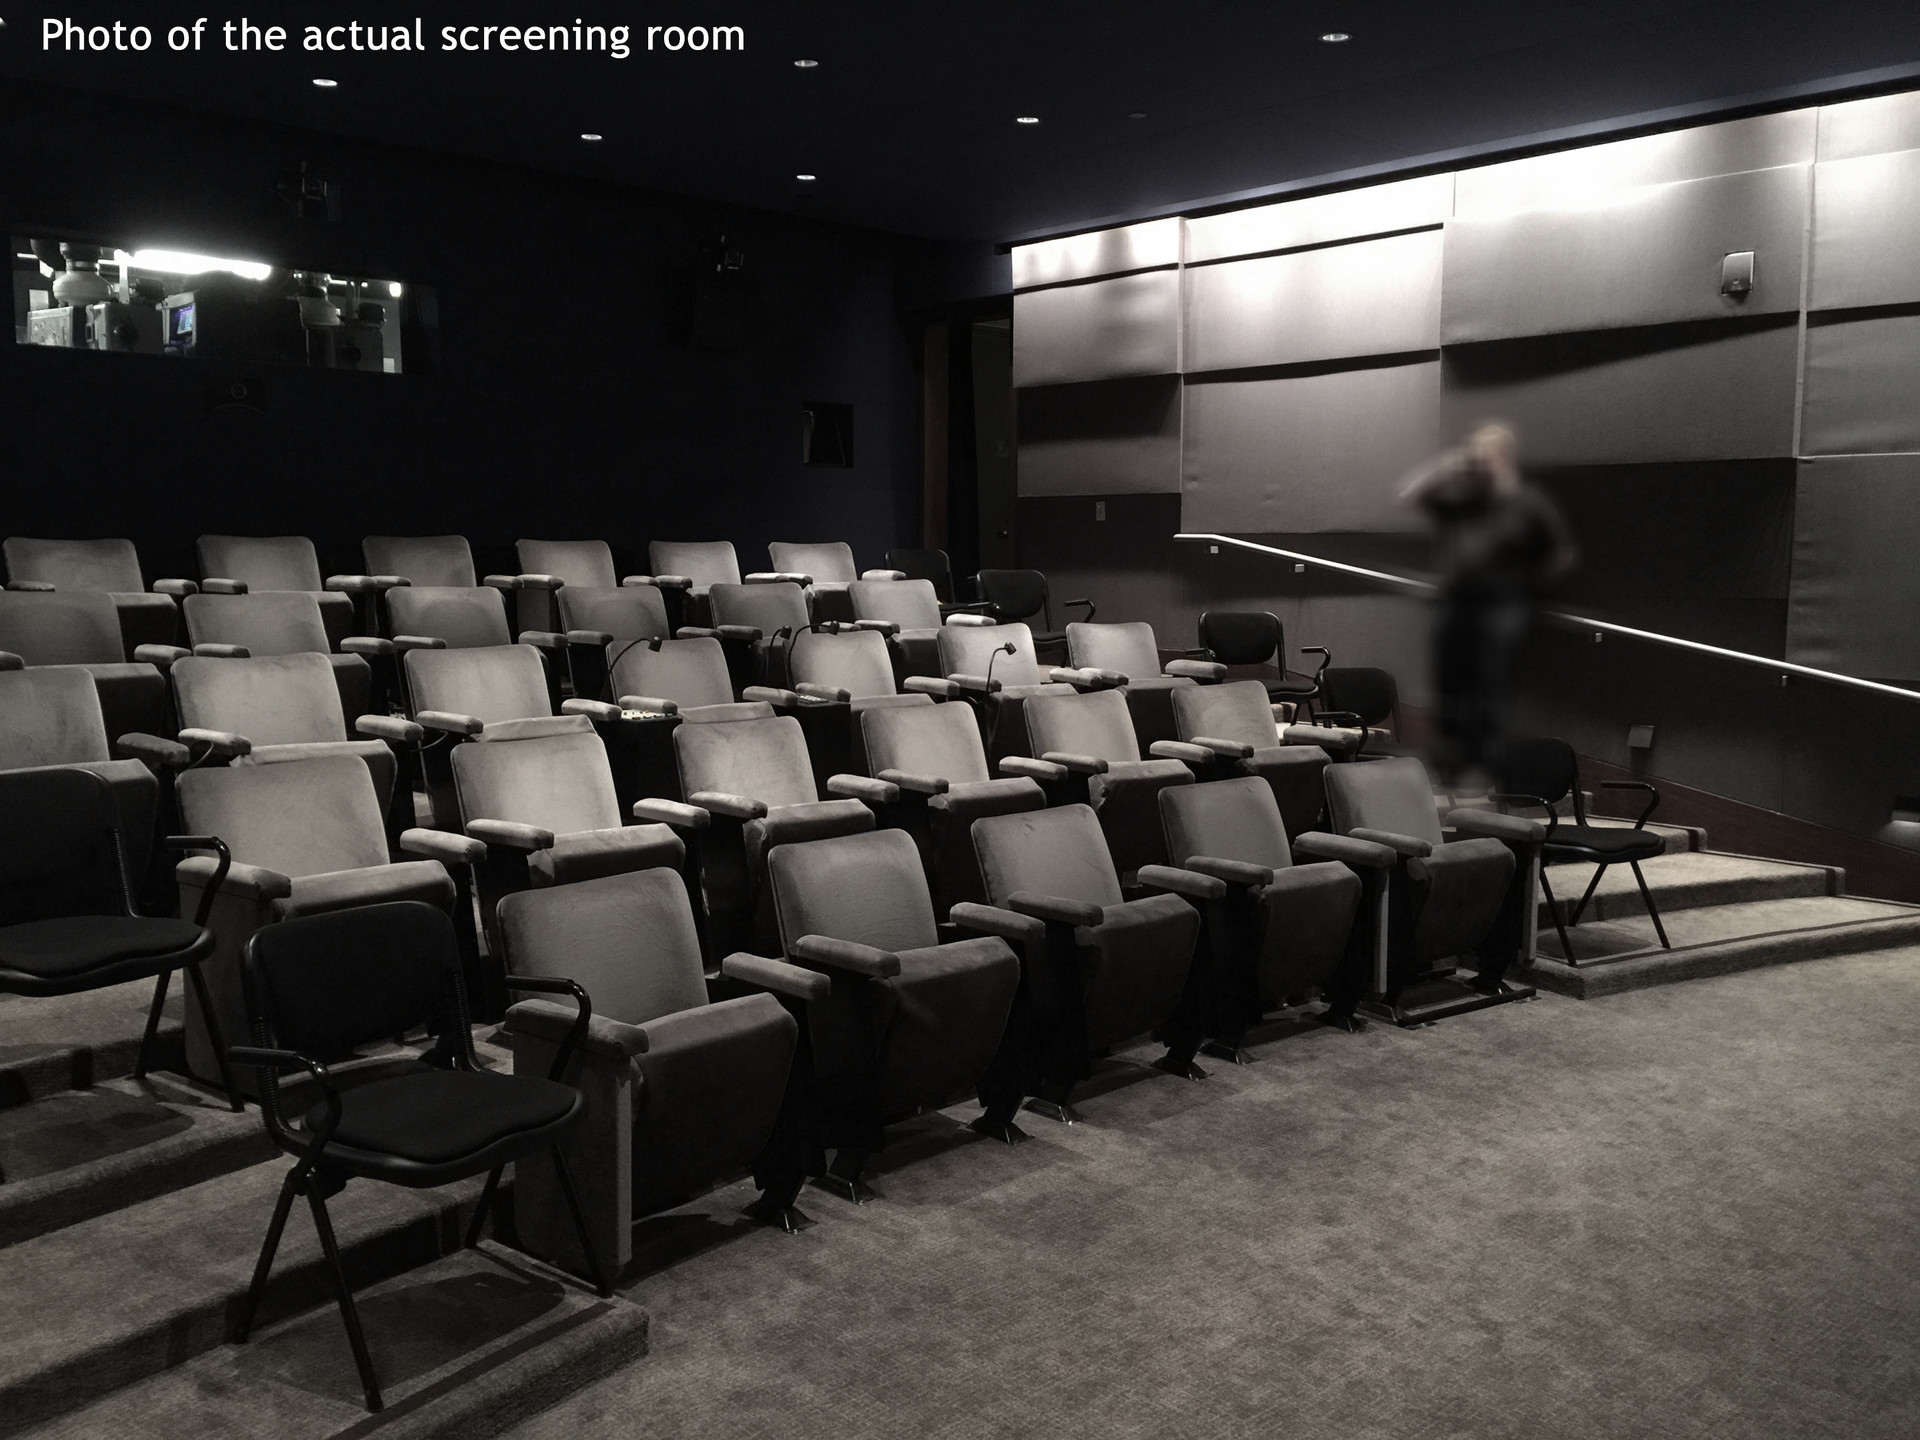 Actual Screening Room | Theater